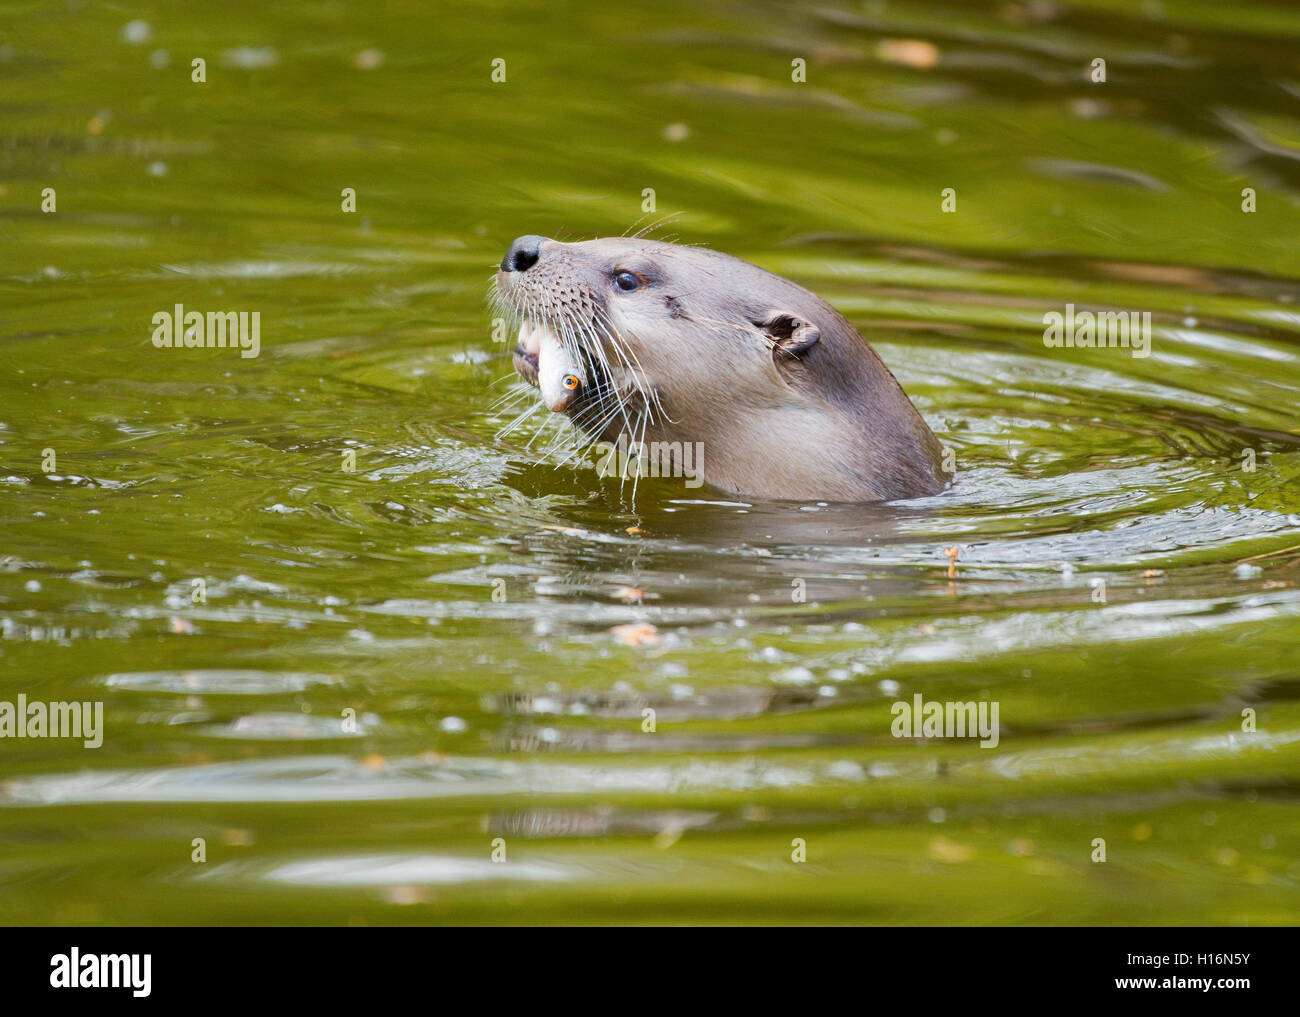 Eurasian otter (Lutra lutra) with a fish in its mouth, captive, Germany - Stock Image